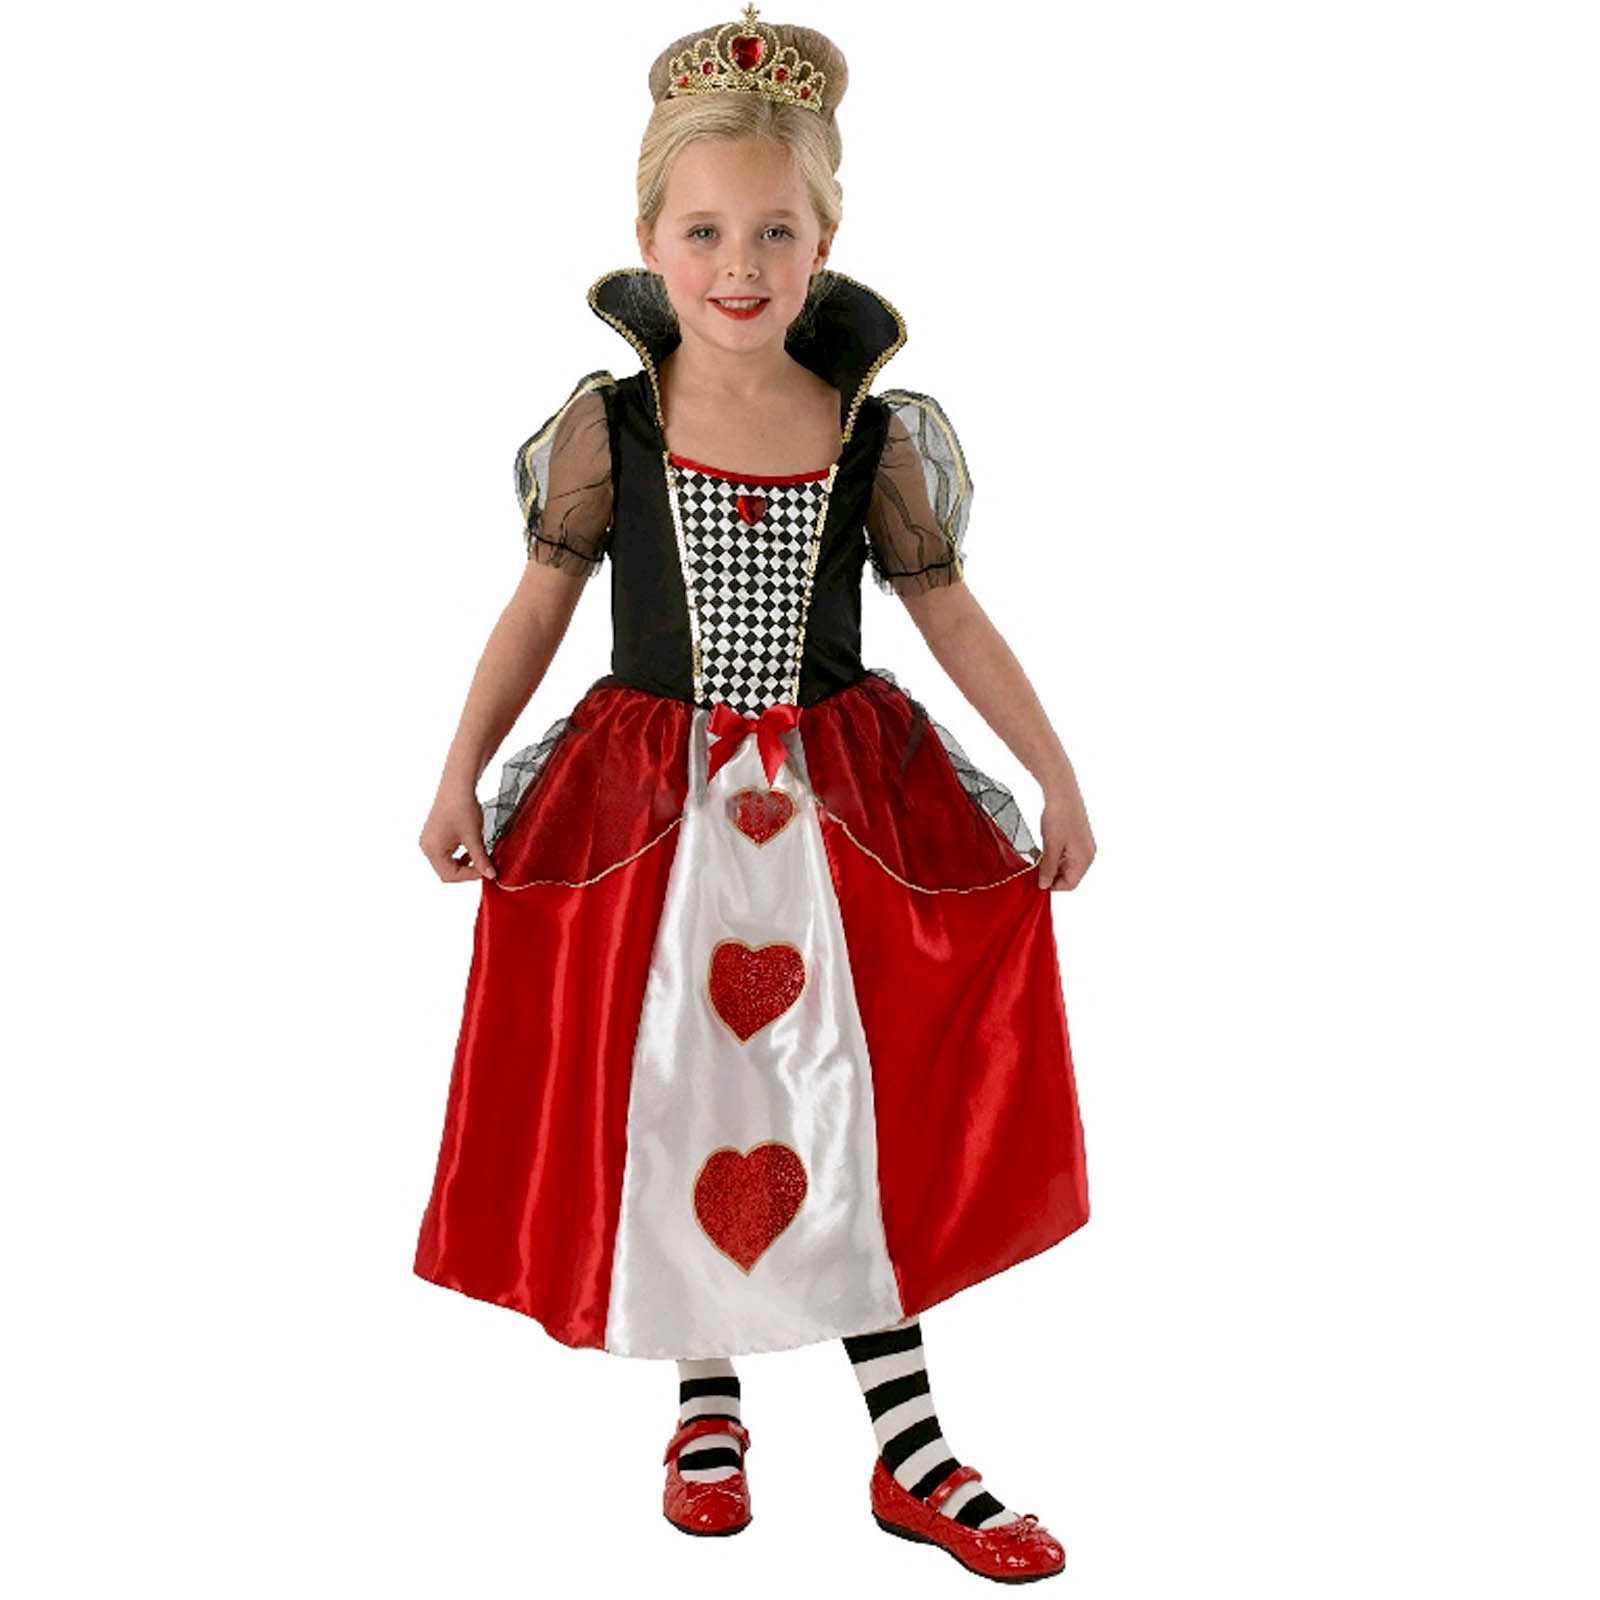 Queen of Hearts Costume - Girls